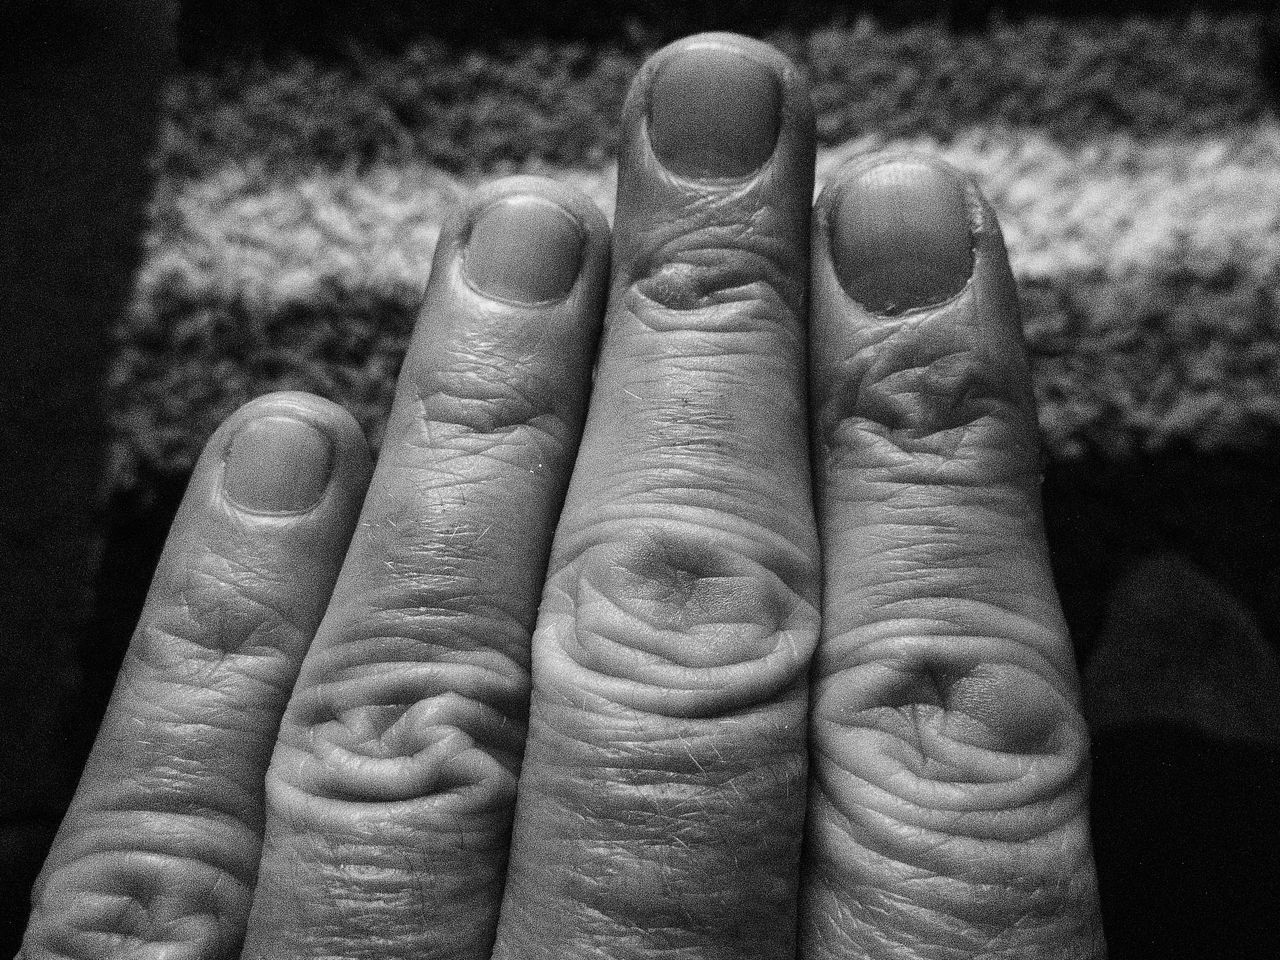 All My Own Work Black And White Photography Digital Digits For Snappin Photos Fingers Knuckles No Edit/no Filter Patterns In The Fingers Unique To Me